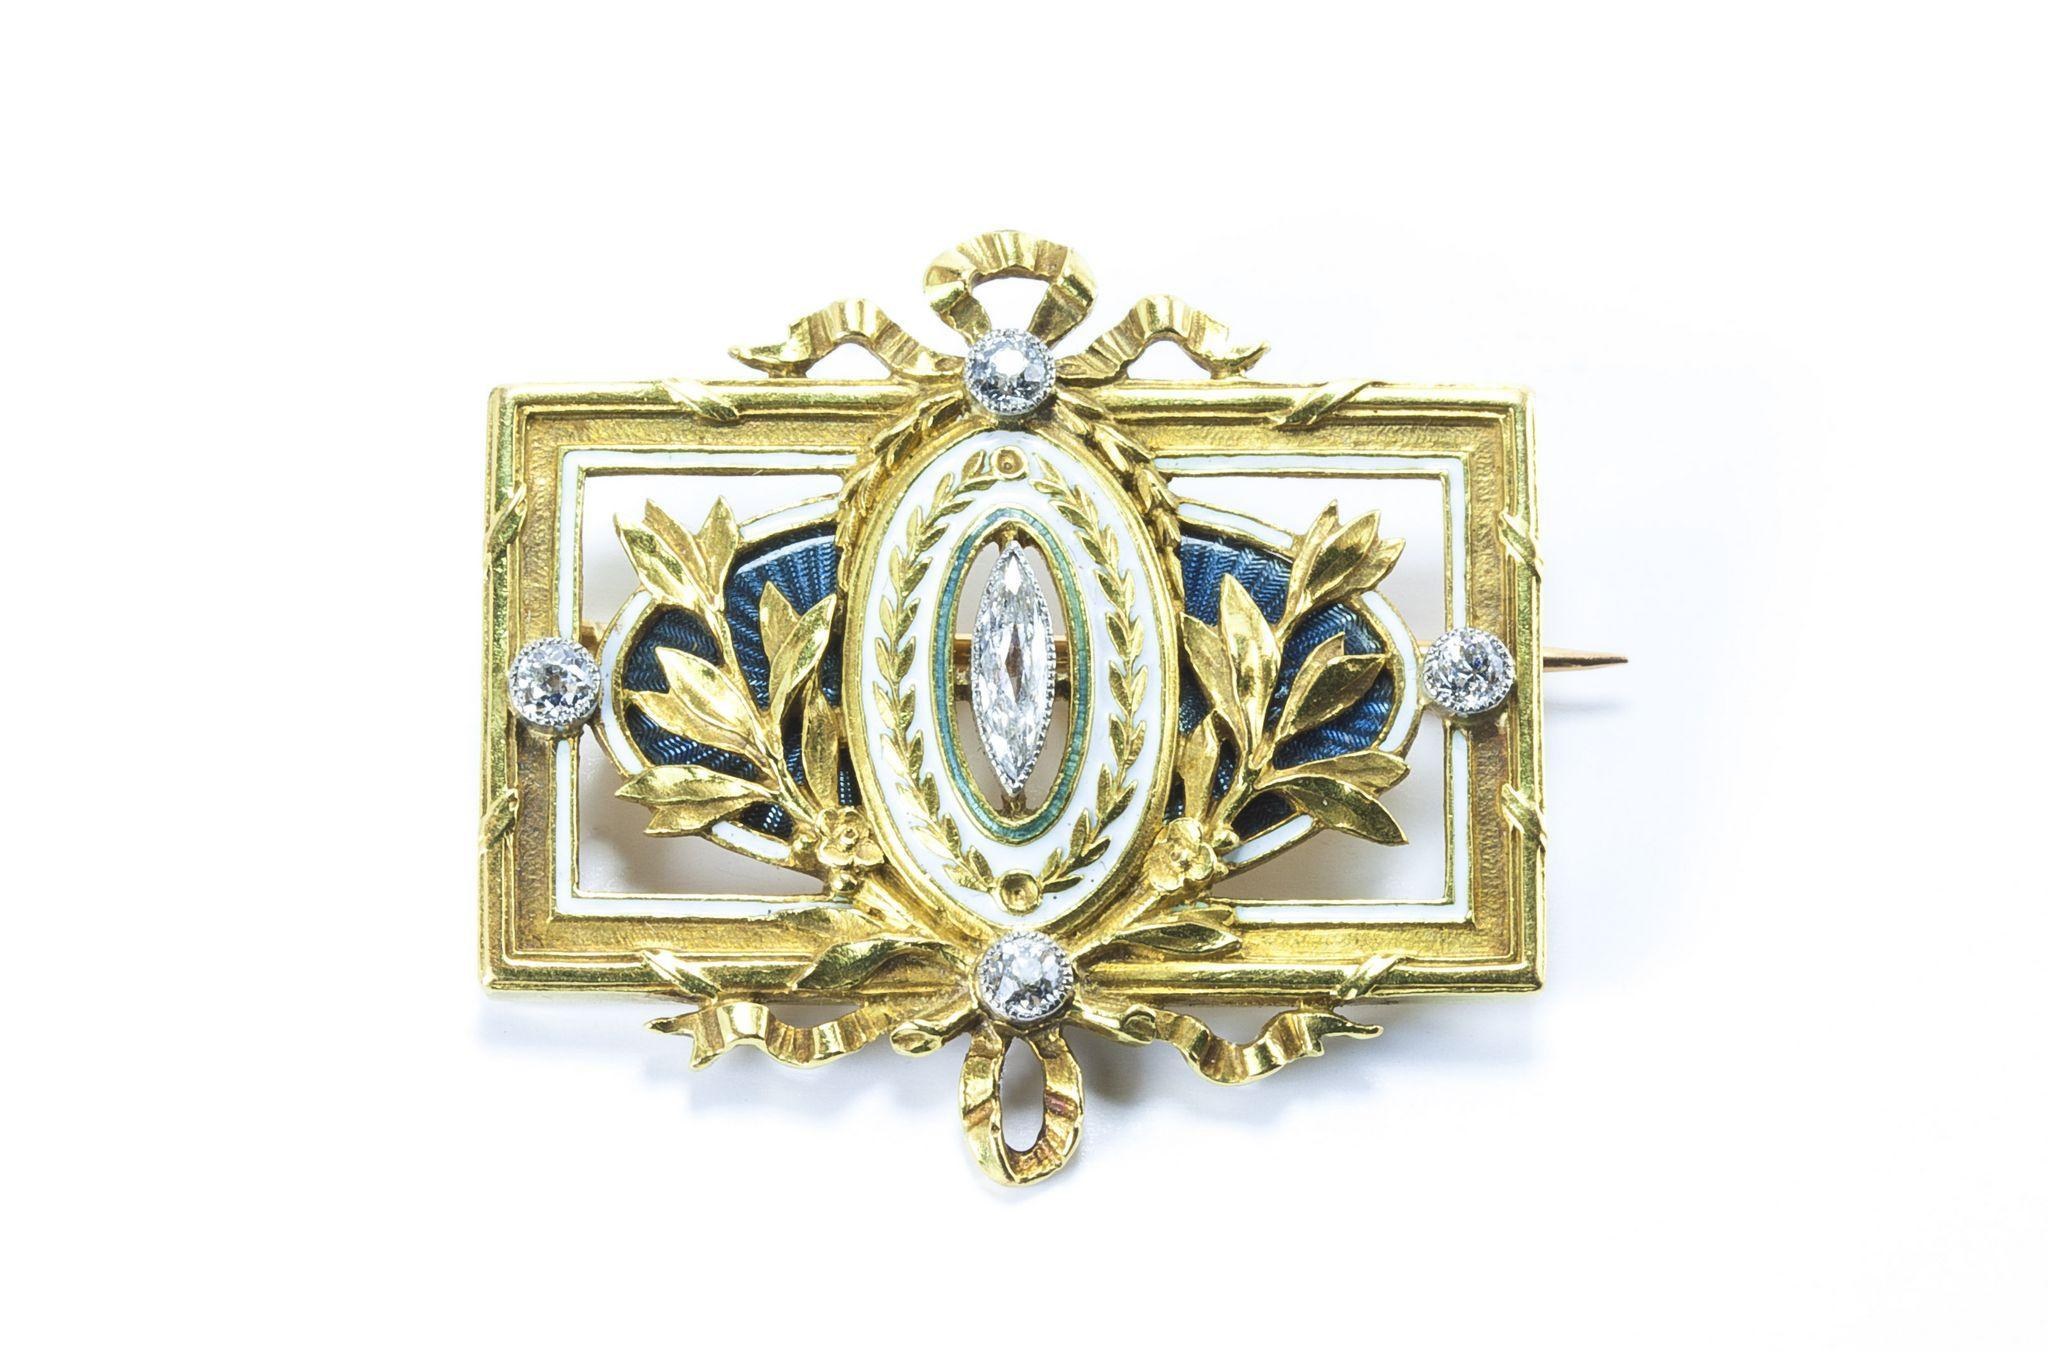 Belle Époque Diamond and Enamel Brooch, Signed Lucien Gautrait for Léon Gariod